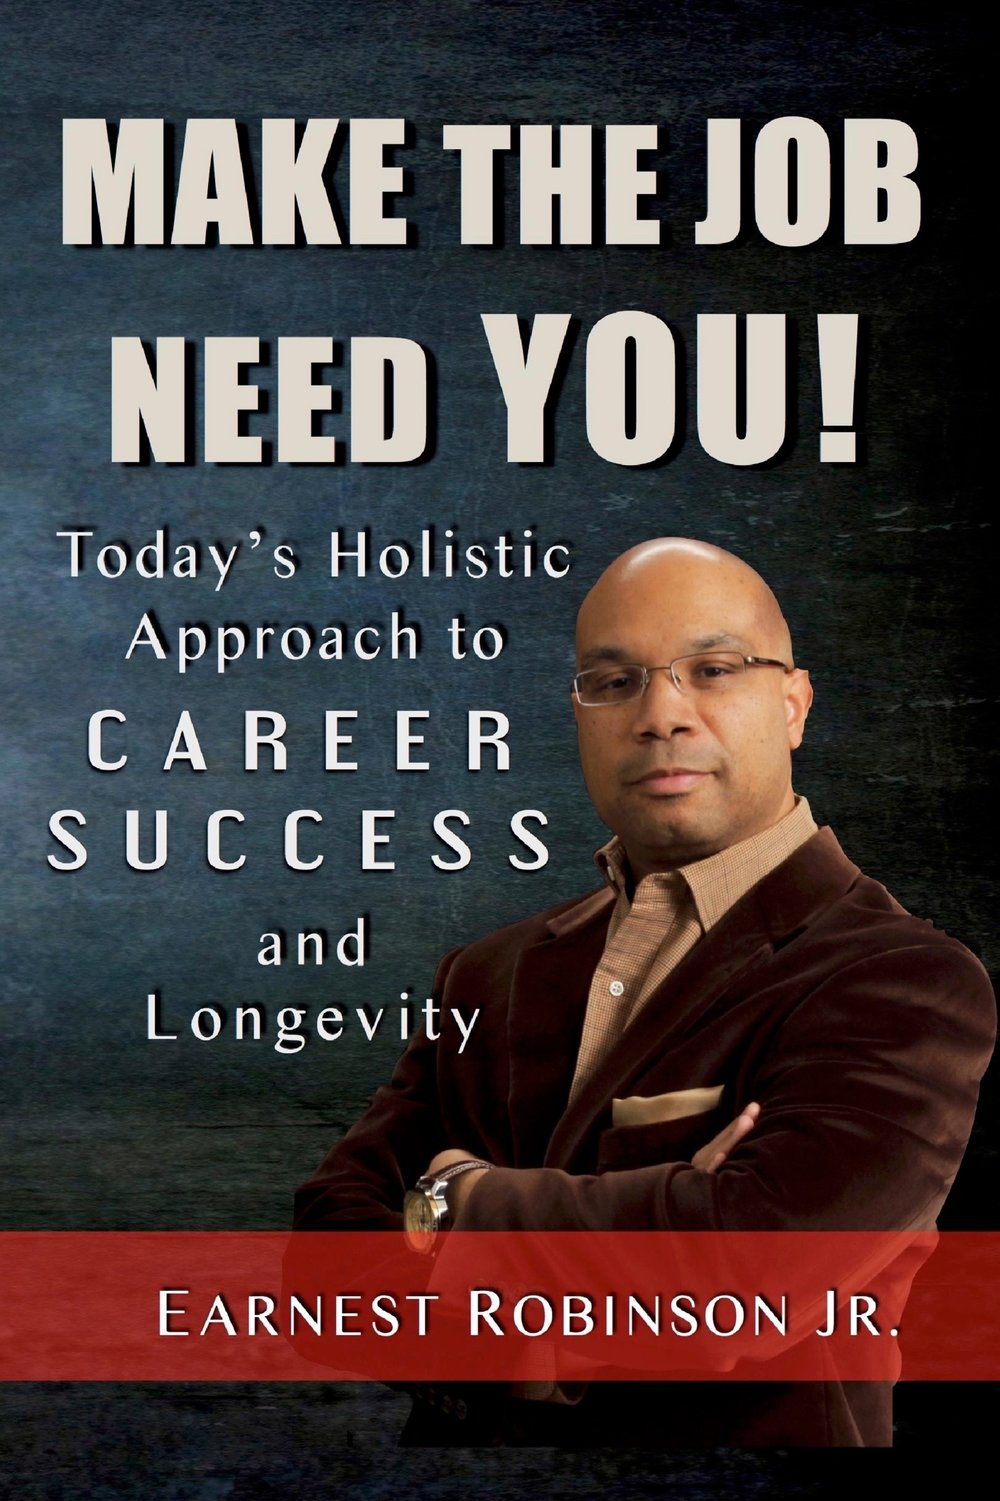 Make the Job Need You!Earnest Robinson Jr. -